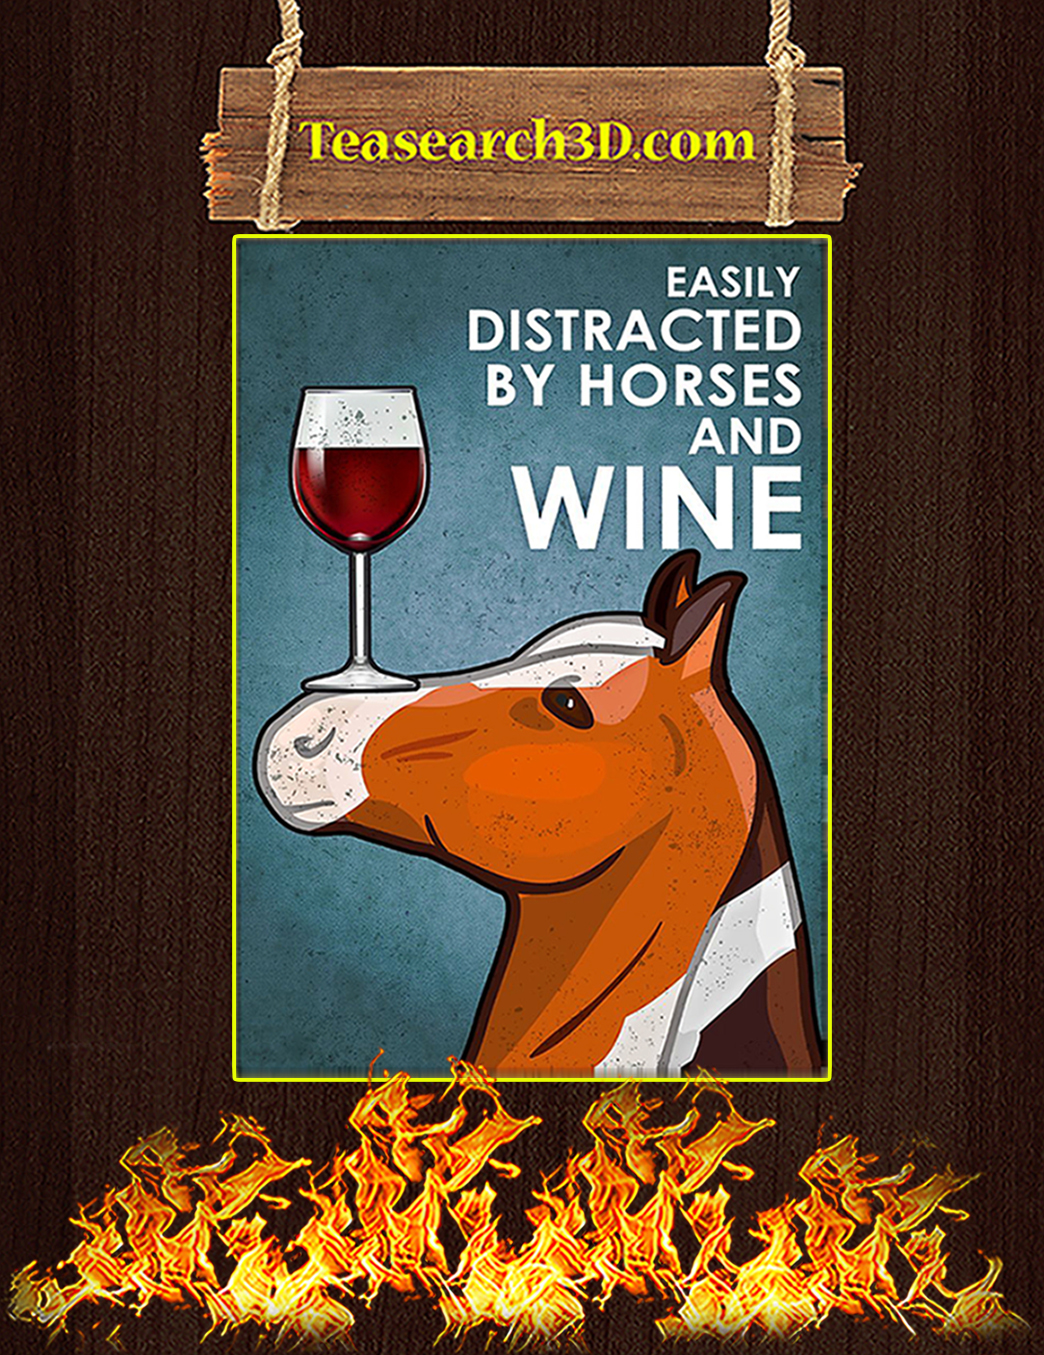 Easily distracted by horses and wine poster A1